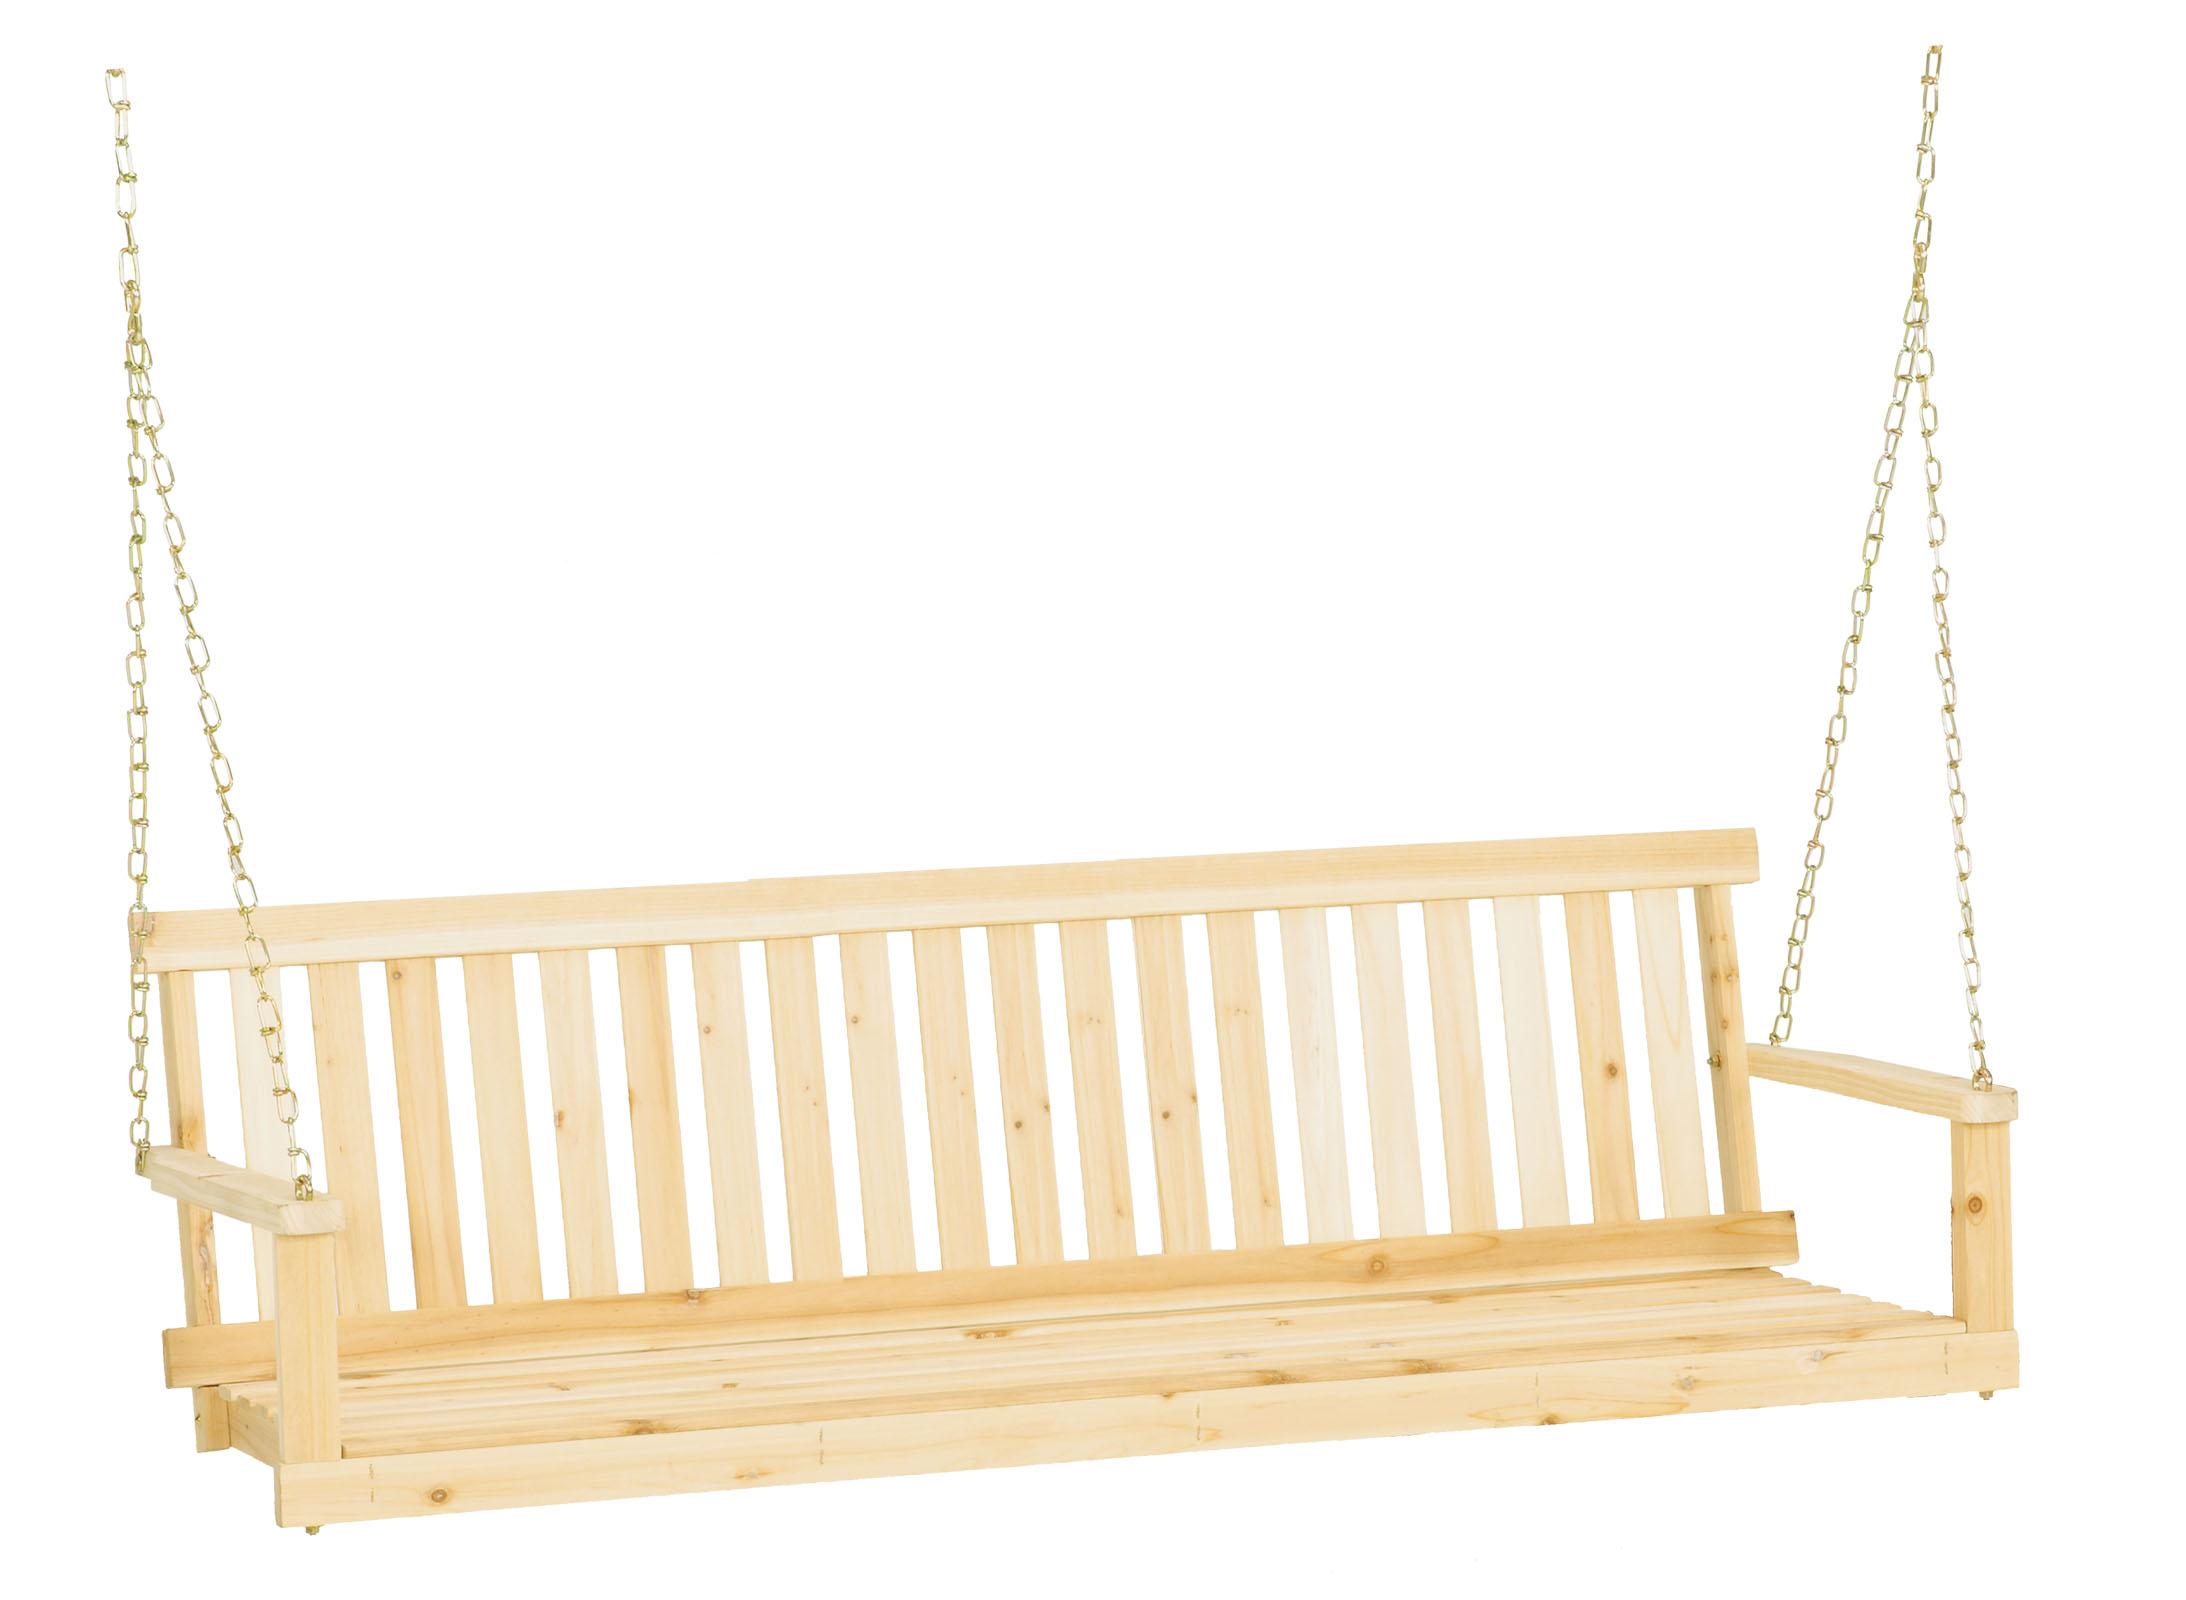 "Jack Post H-25 60""W x 22""D x 17.5""H Classic Natural Finish Porch Swing by Generic"